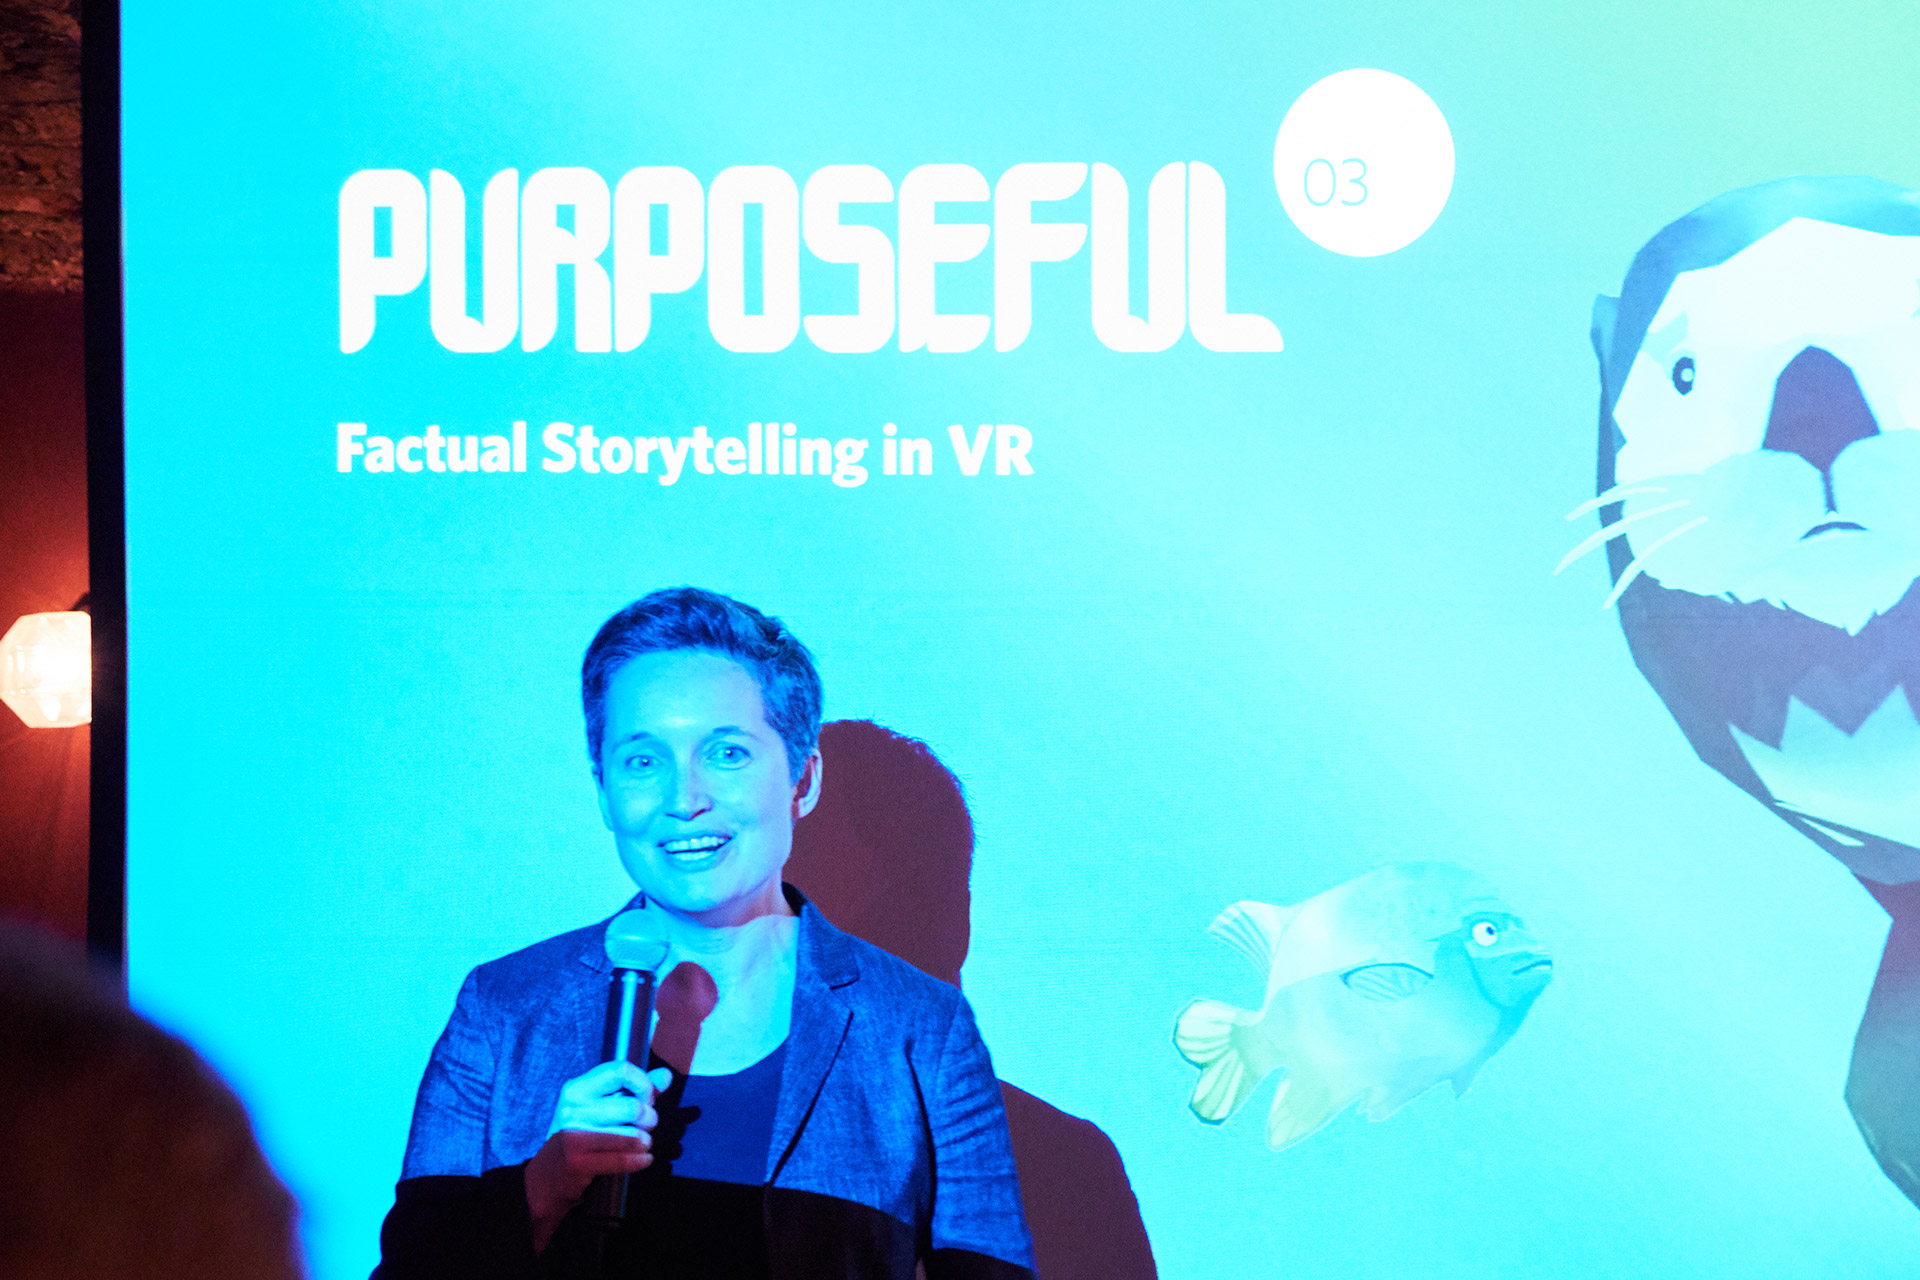 Factual Storytelling in VR